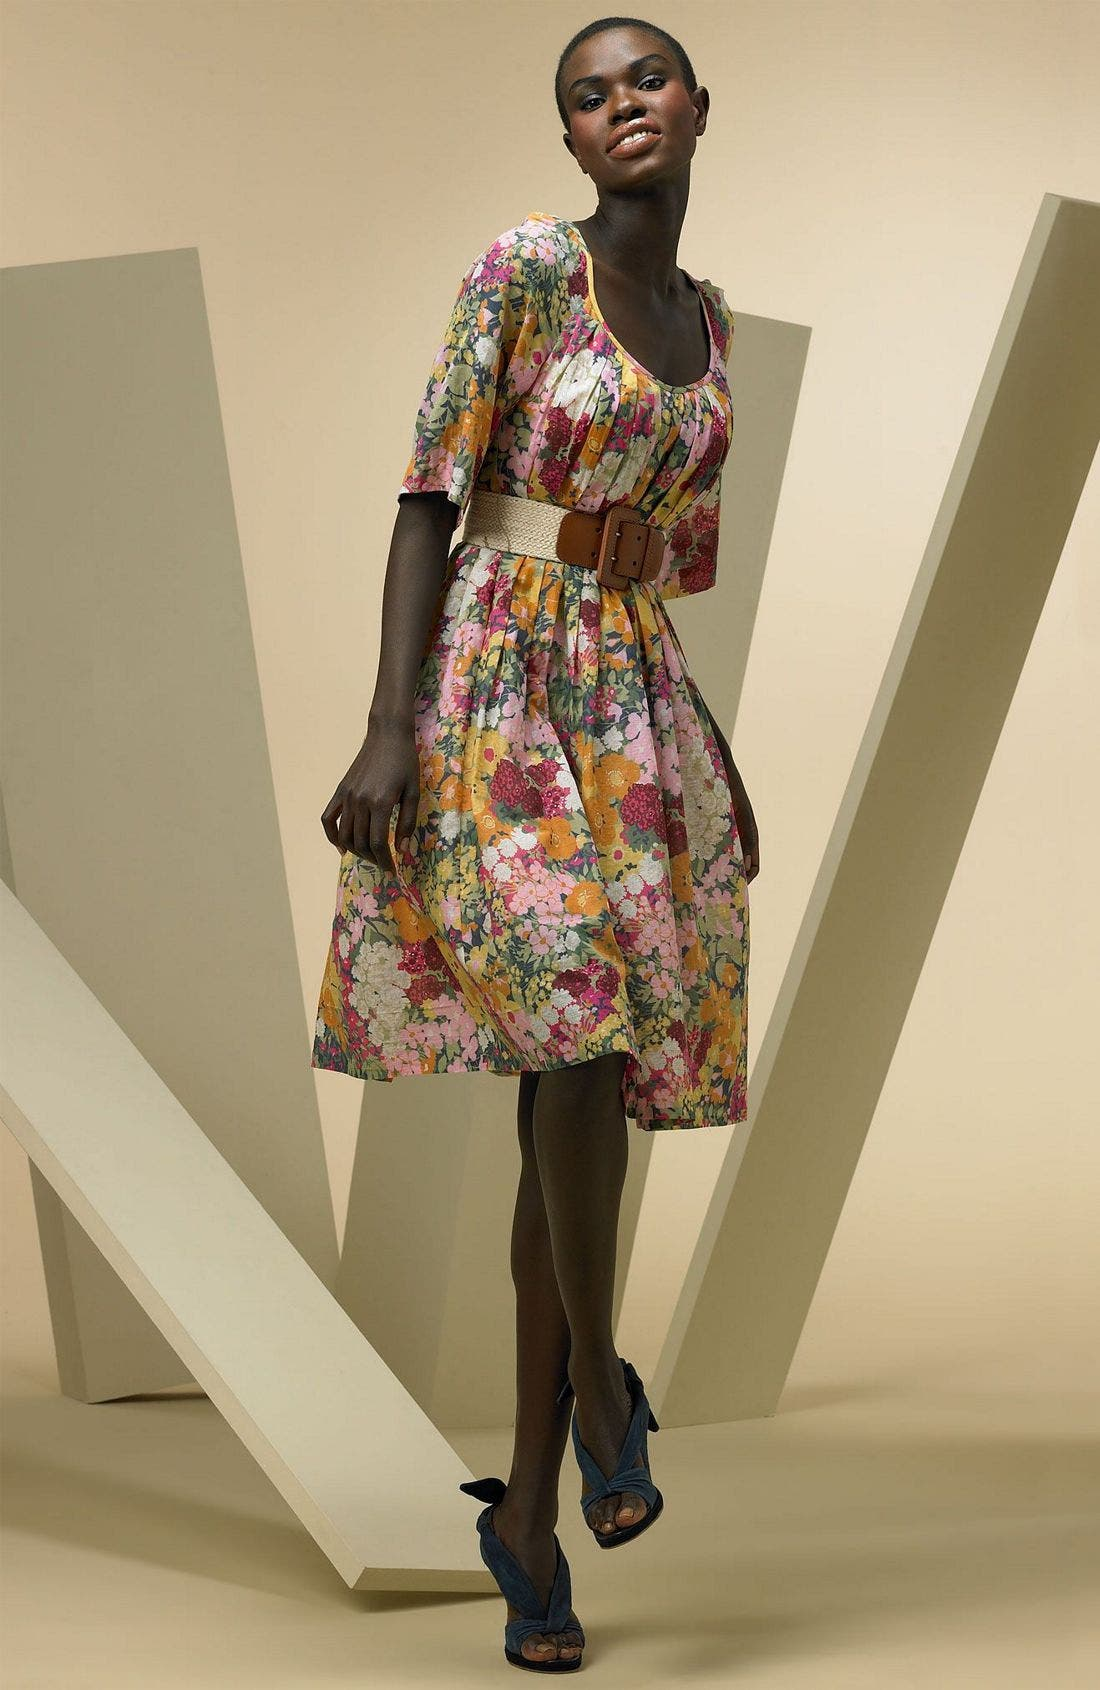 Main Image - 3.1 Phillip Lim Print Dress with Bell Sleeves